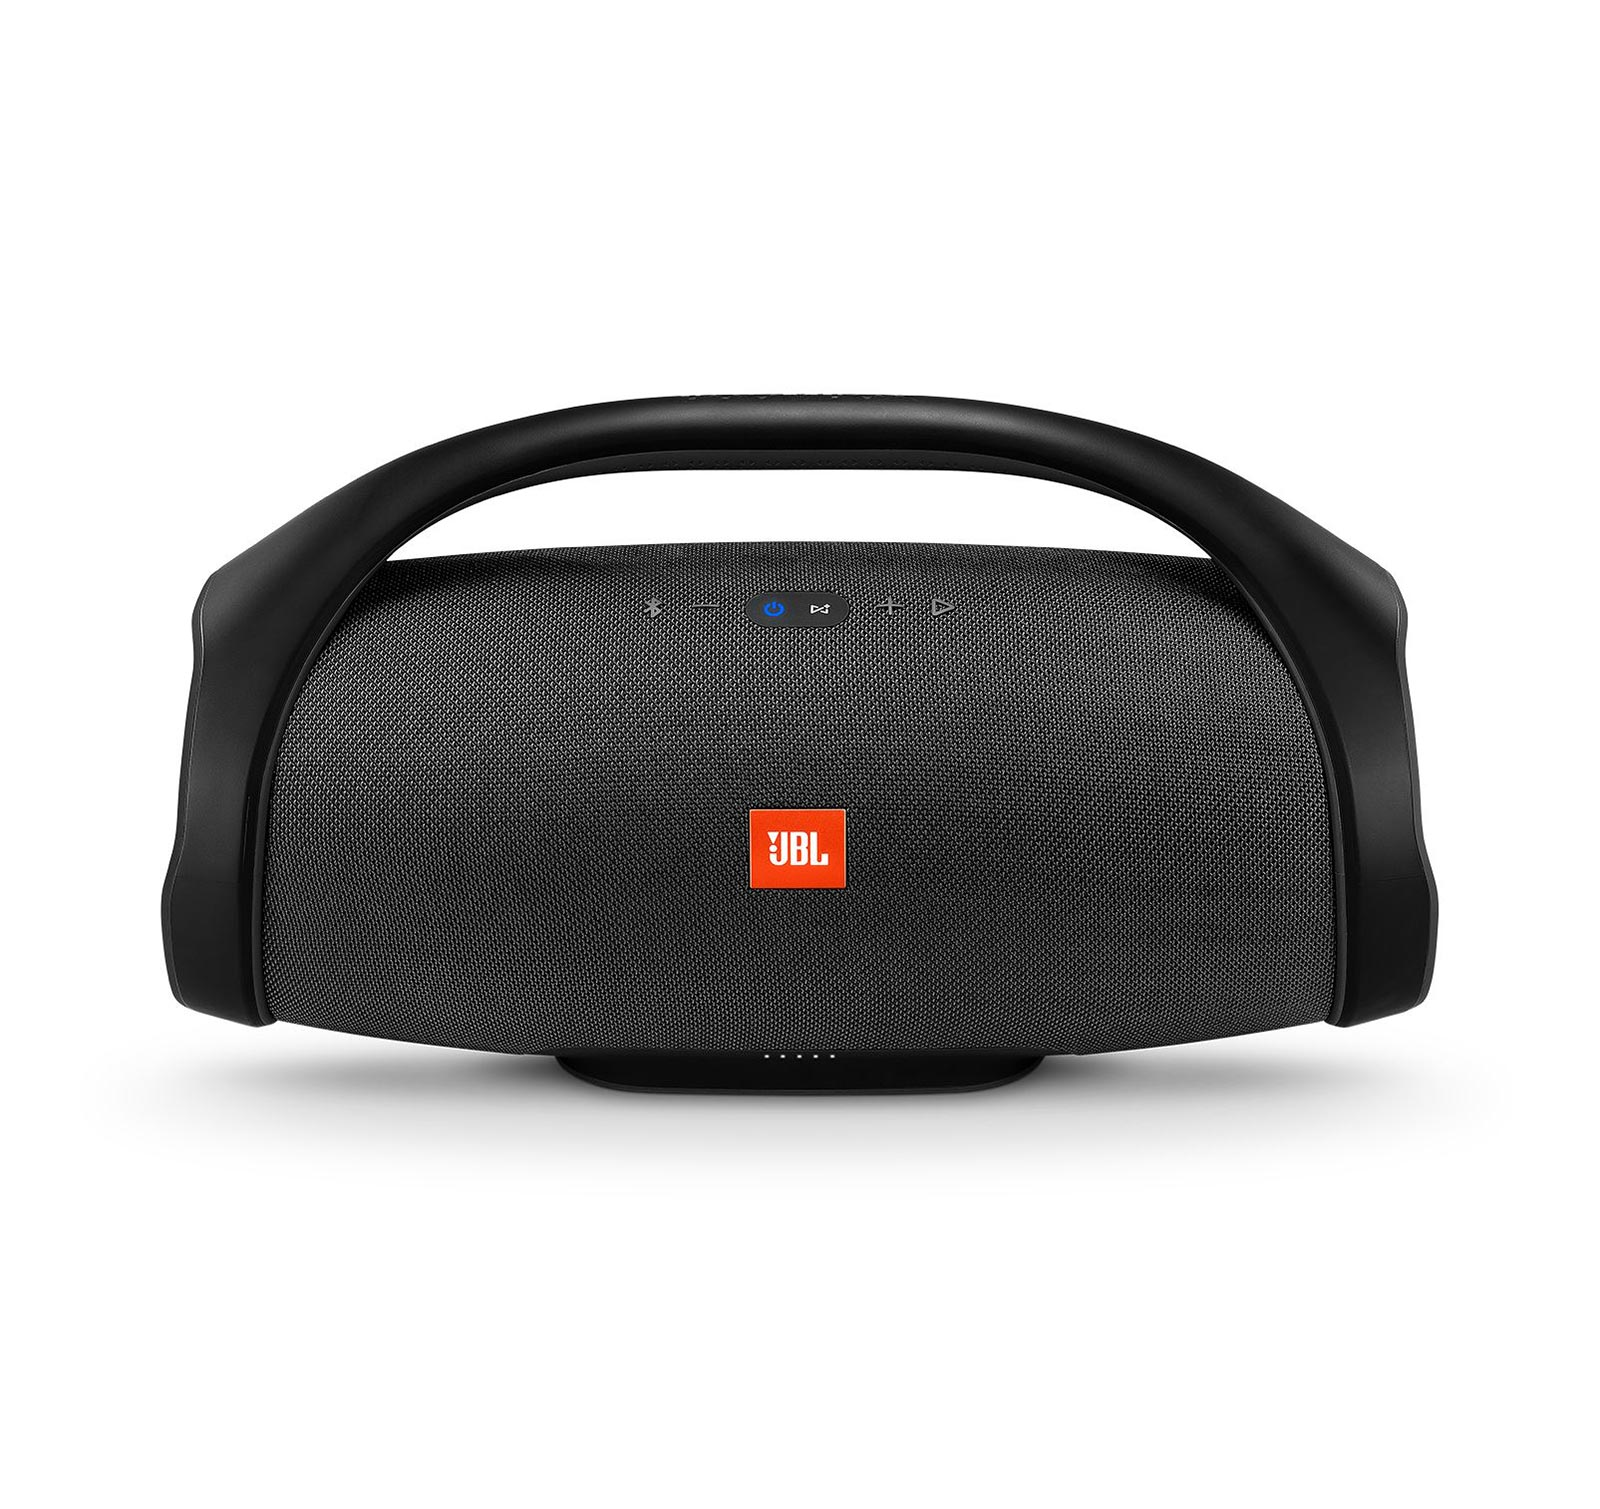 JBL Boombox Black Open Box Portable Bluetooth Speaker